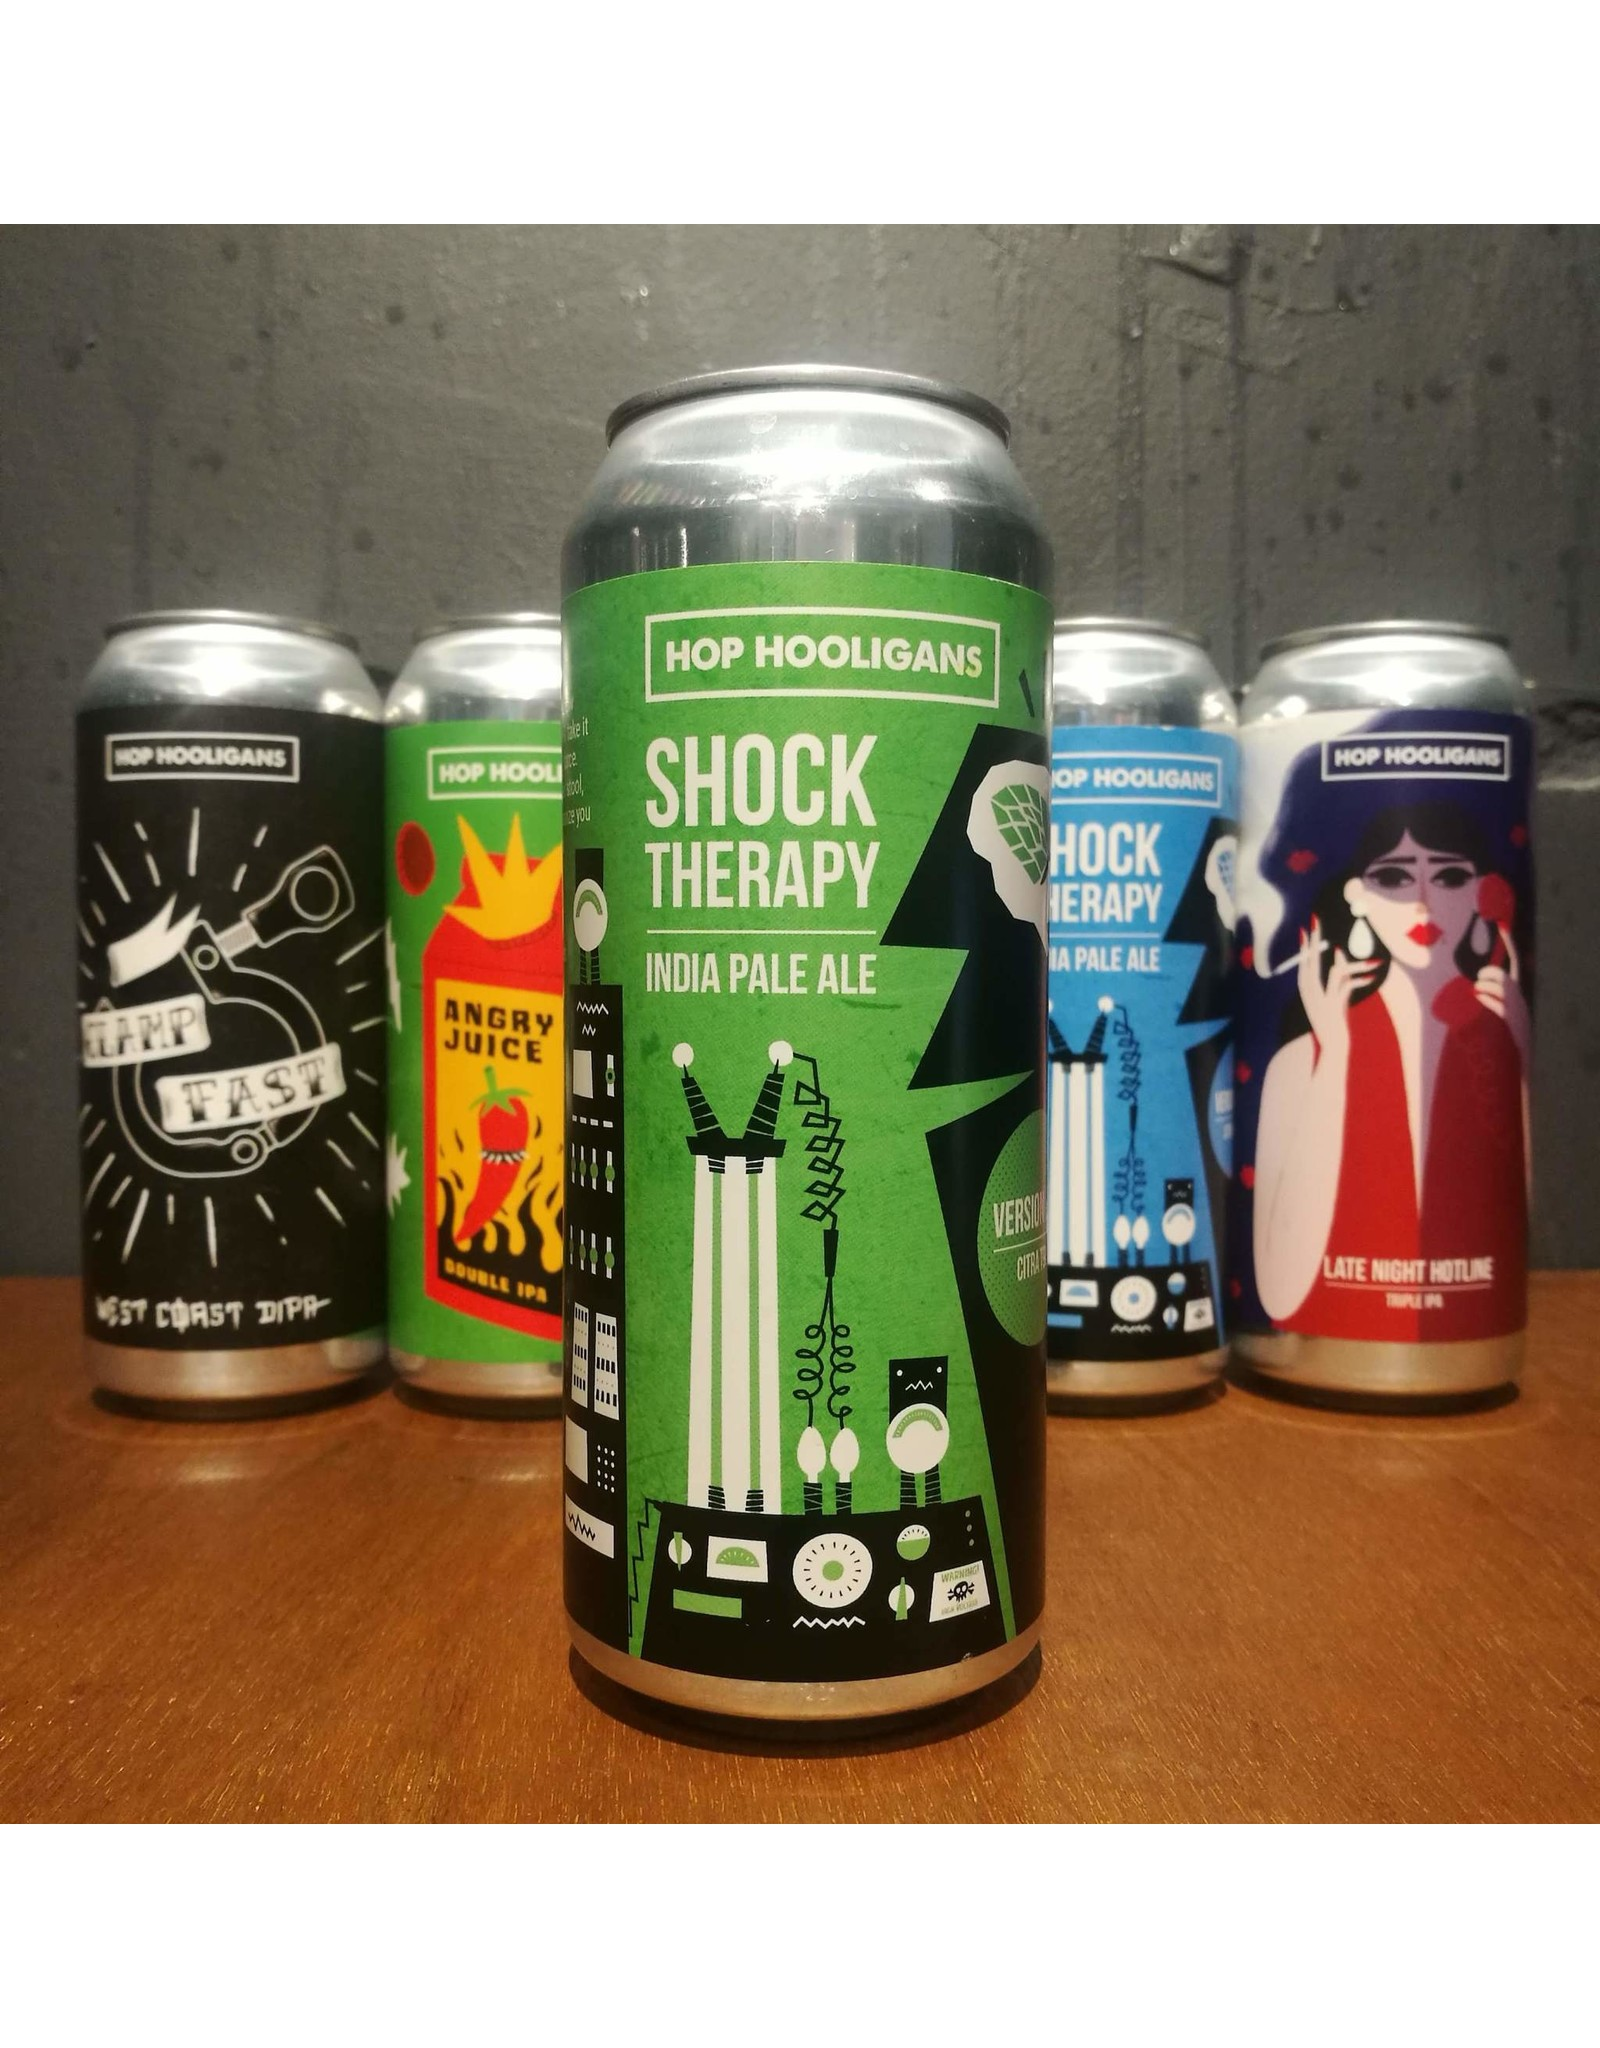 hop hooligans Hop Hooligans - Shock Therapy 30A